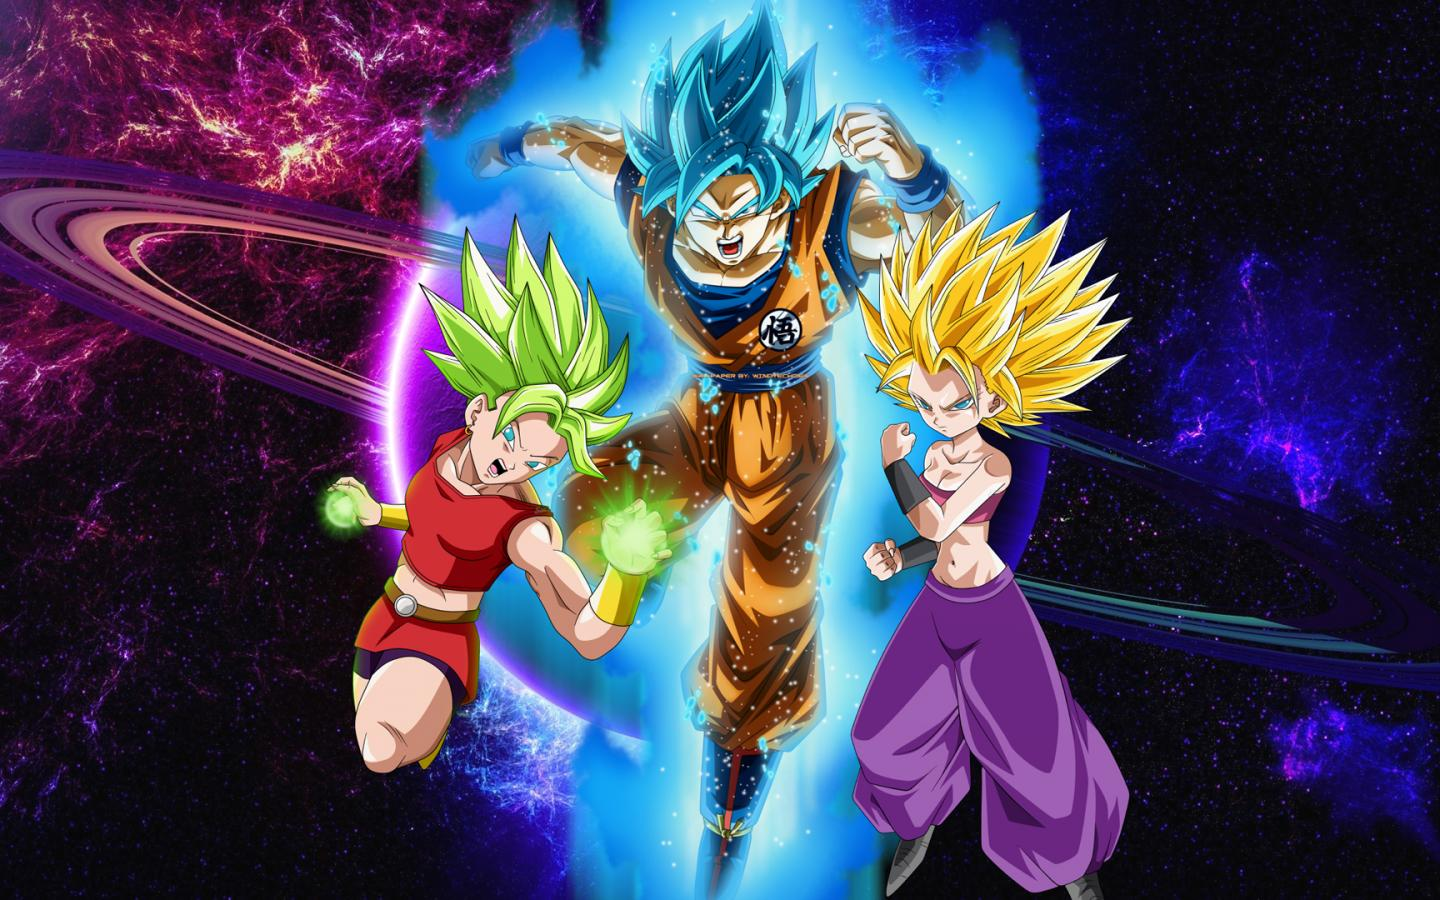 Best 20 Pictures of Dragon Ball Z - #05 - Goku Super ... Dragon Ball Z Goku Super Saiyan 6 Wallpapers